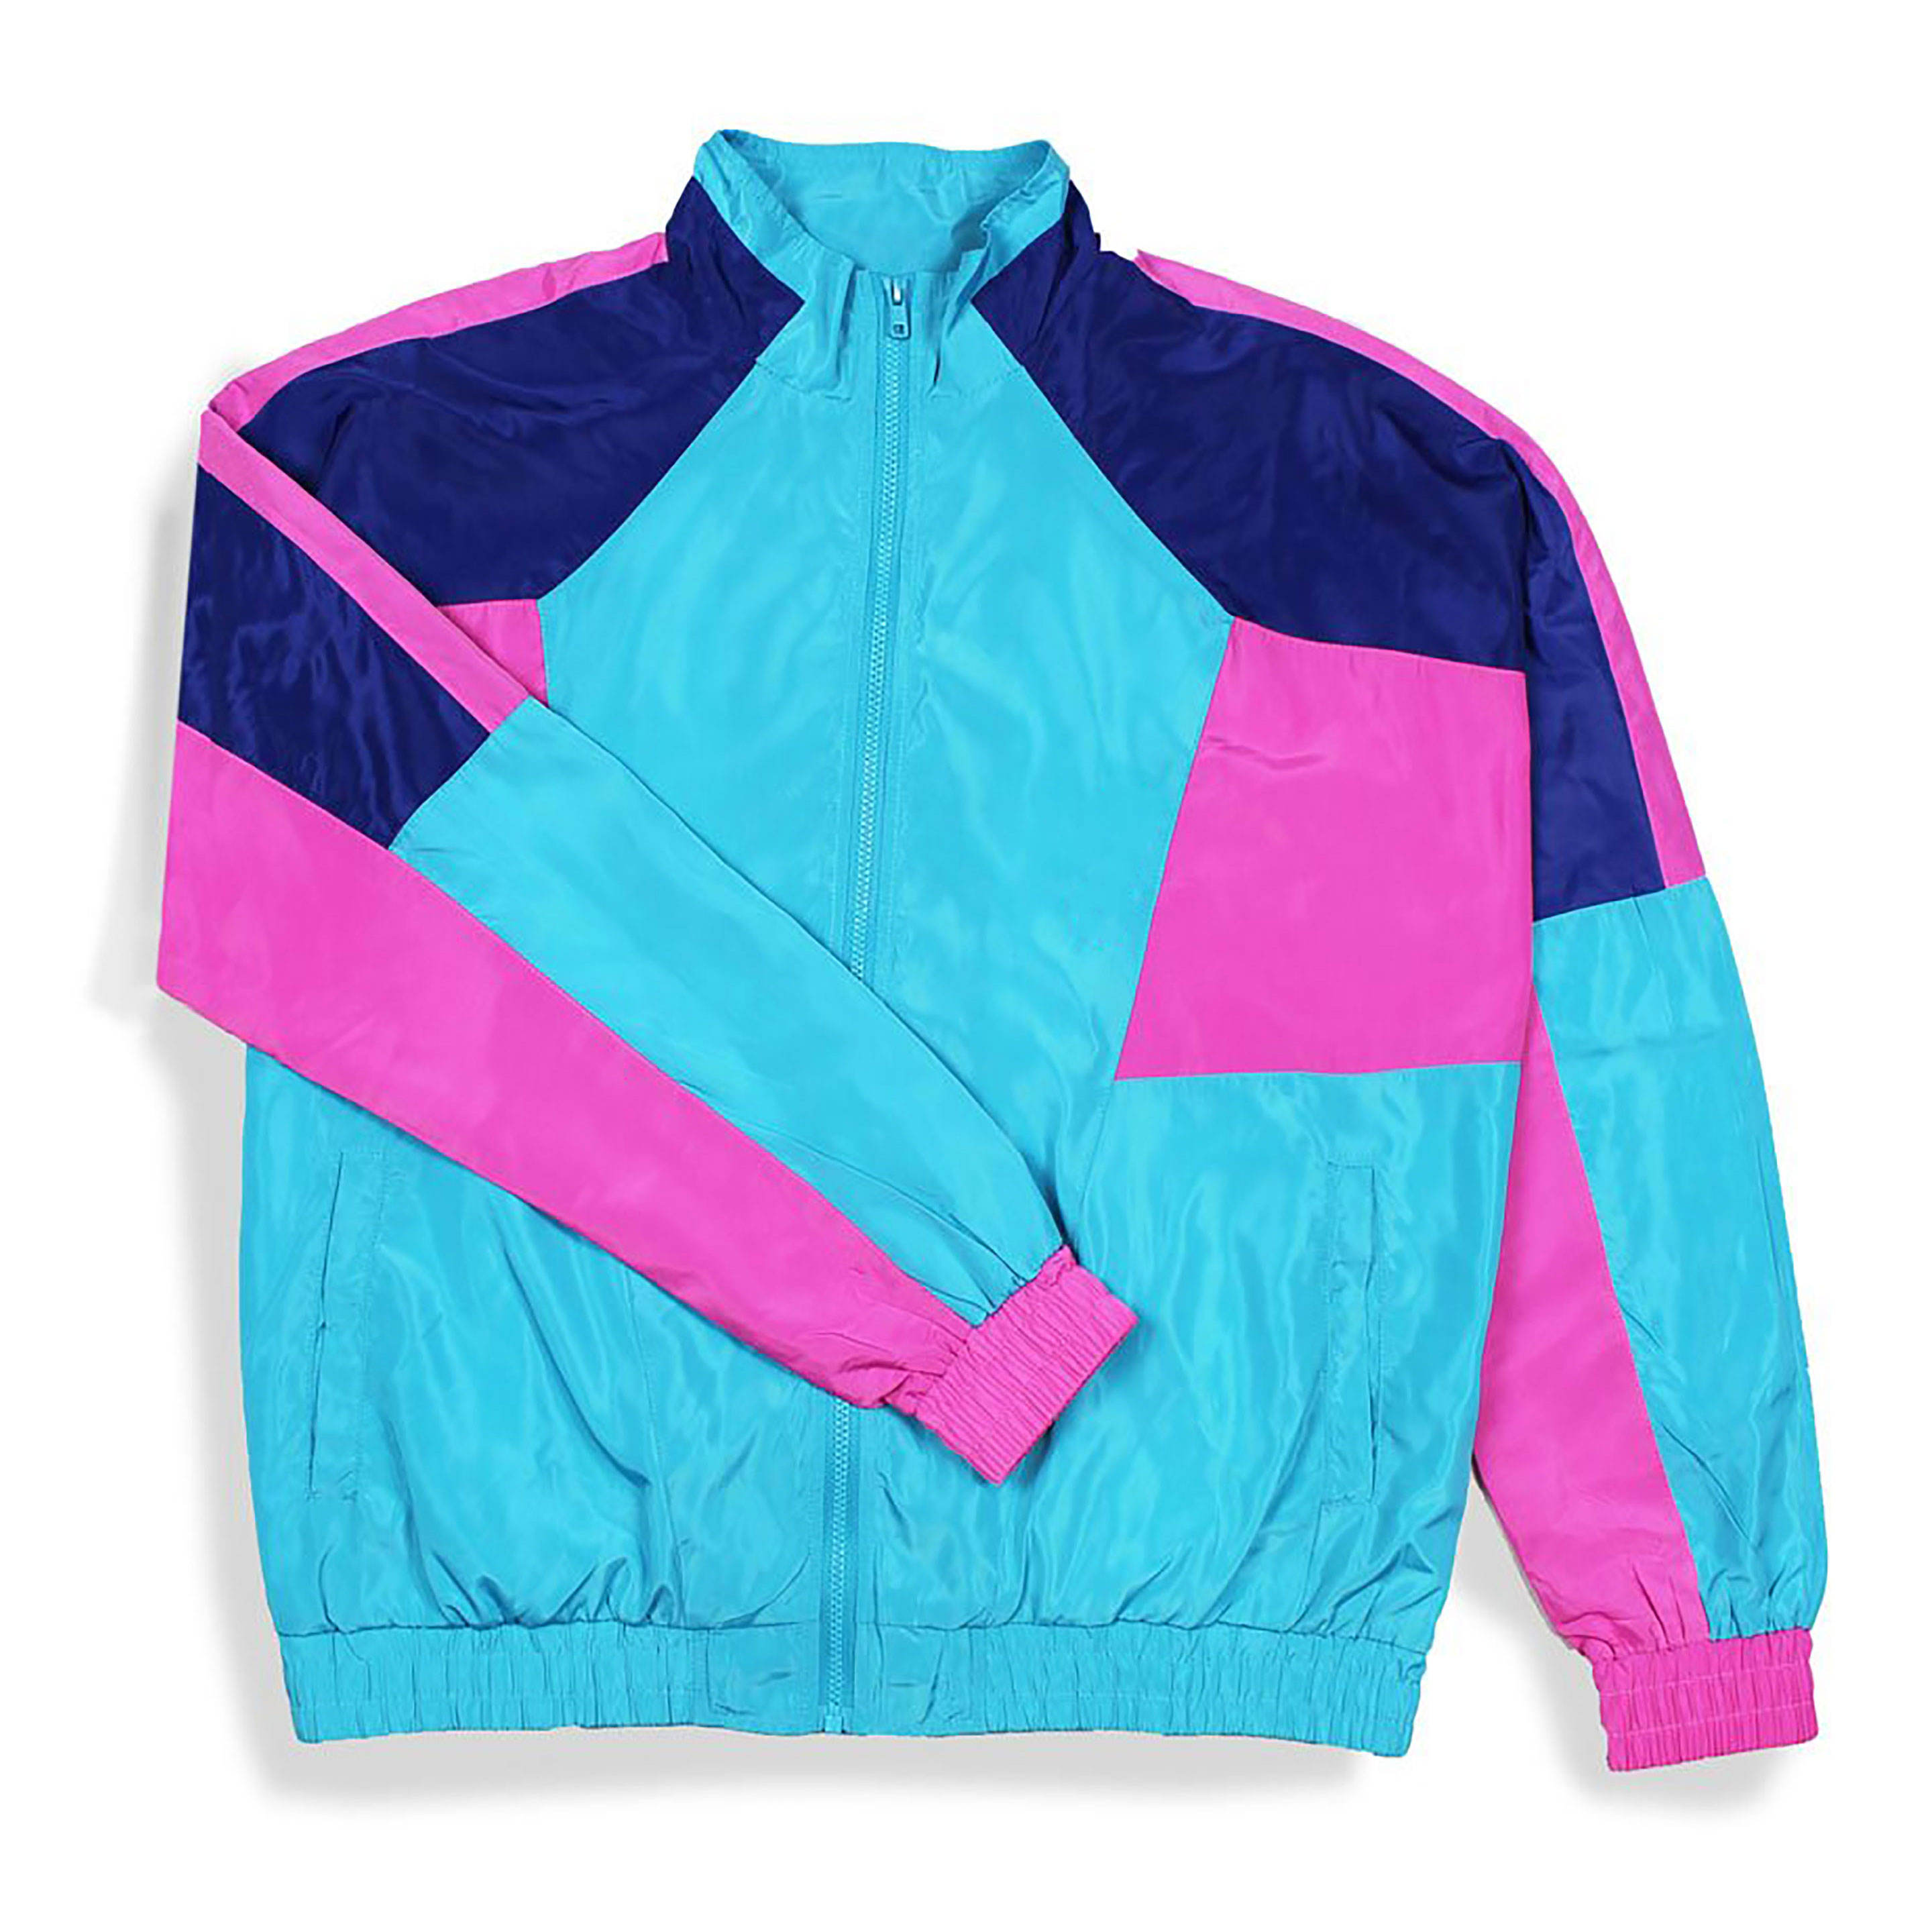 latest design wholesale pullover windbreaker or retro cheap windbreaker jackets